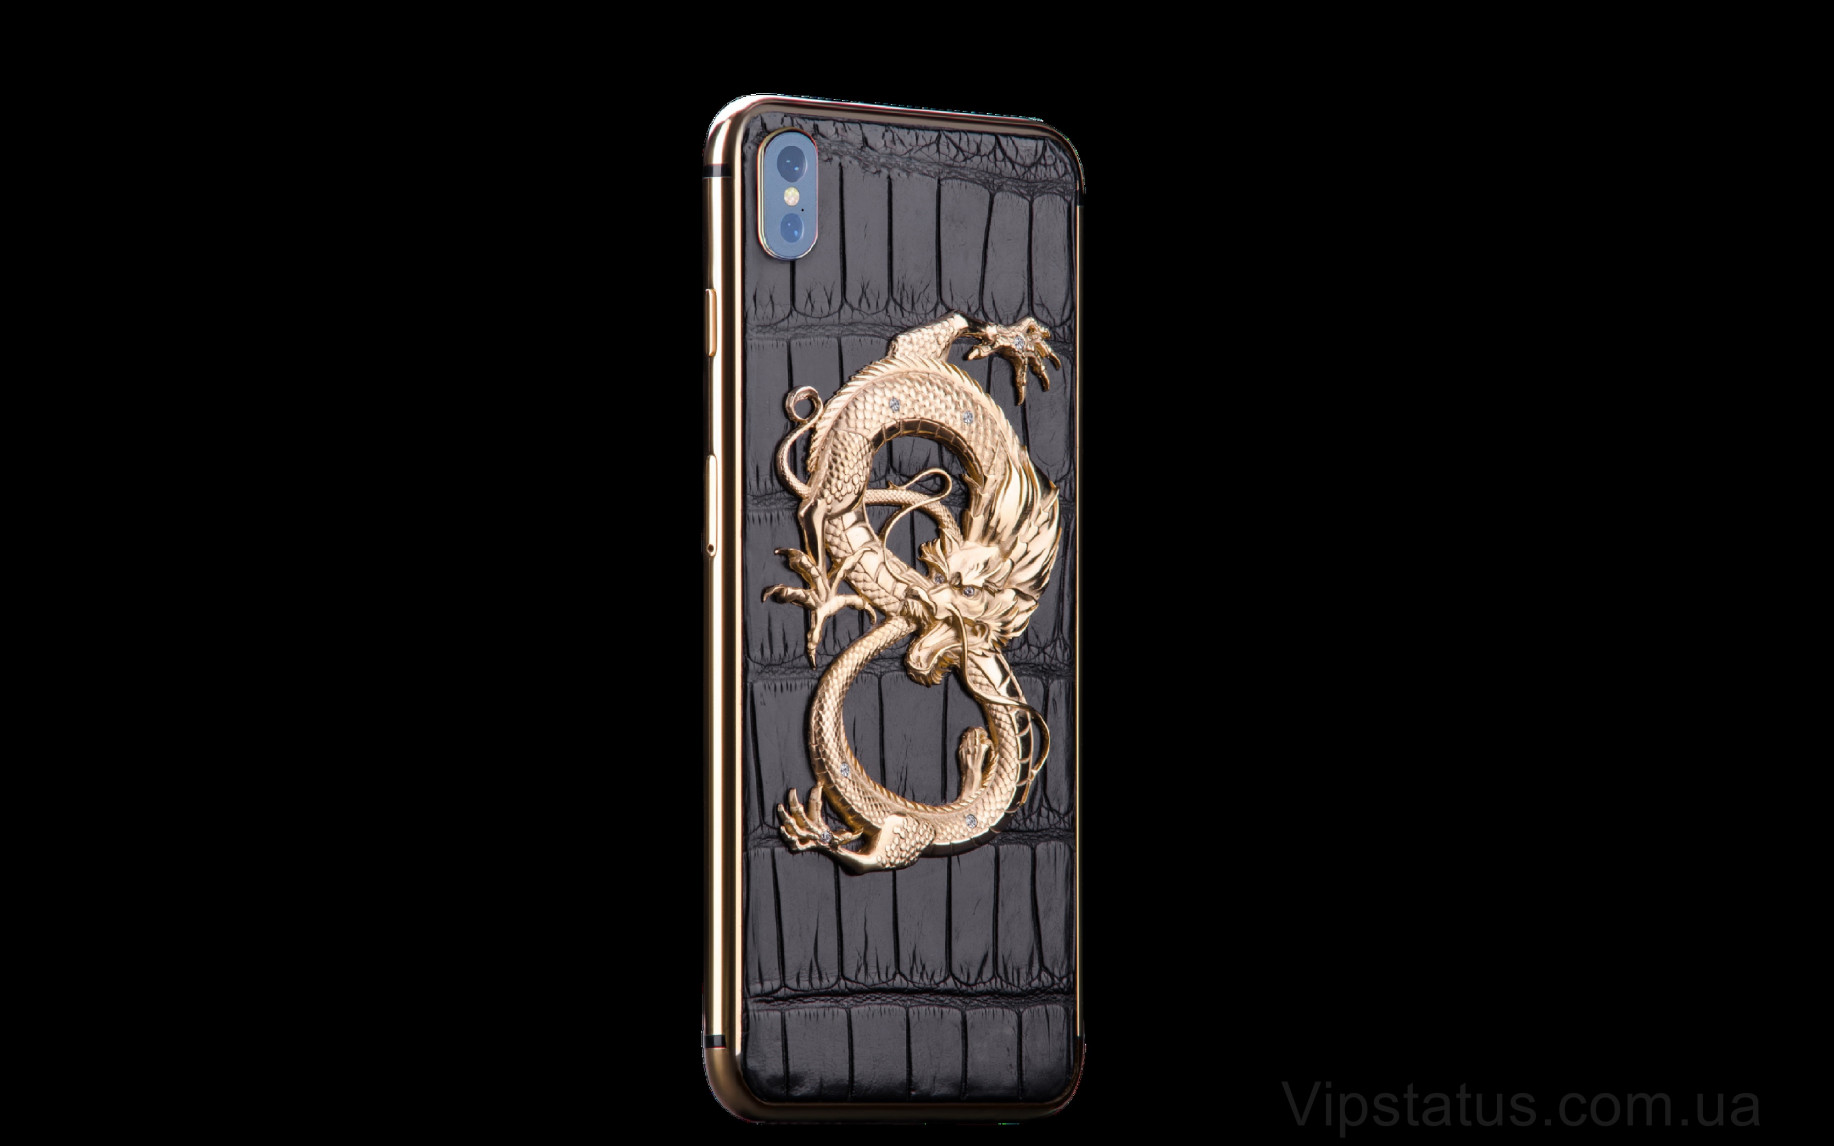 Elite Classic Dragon IPHONE 11 PRO 512 GB Classic Dragon IPHONE 11 PRO 512 GB image 1